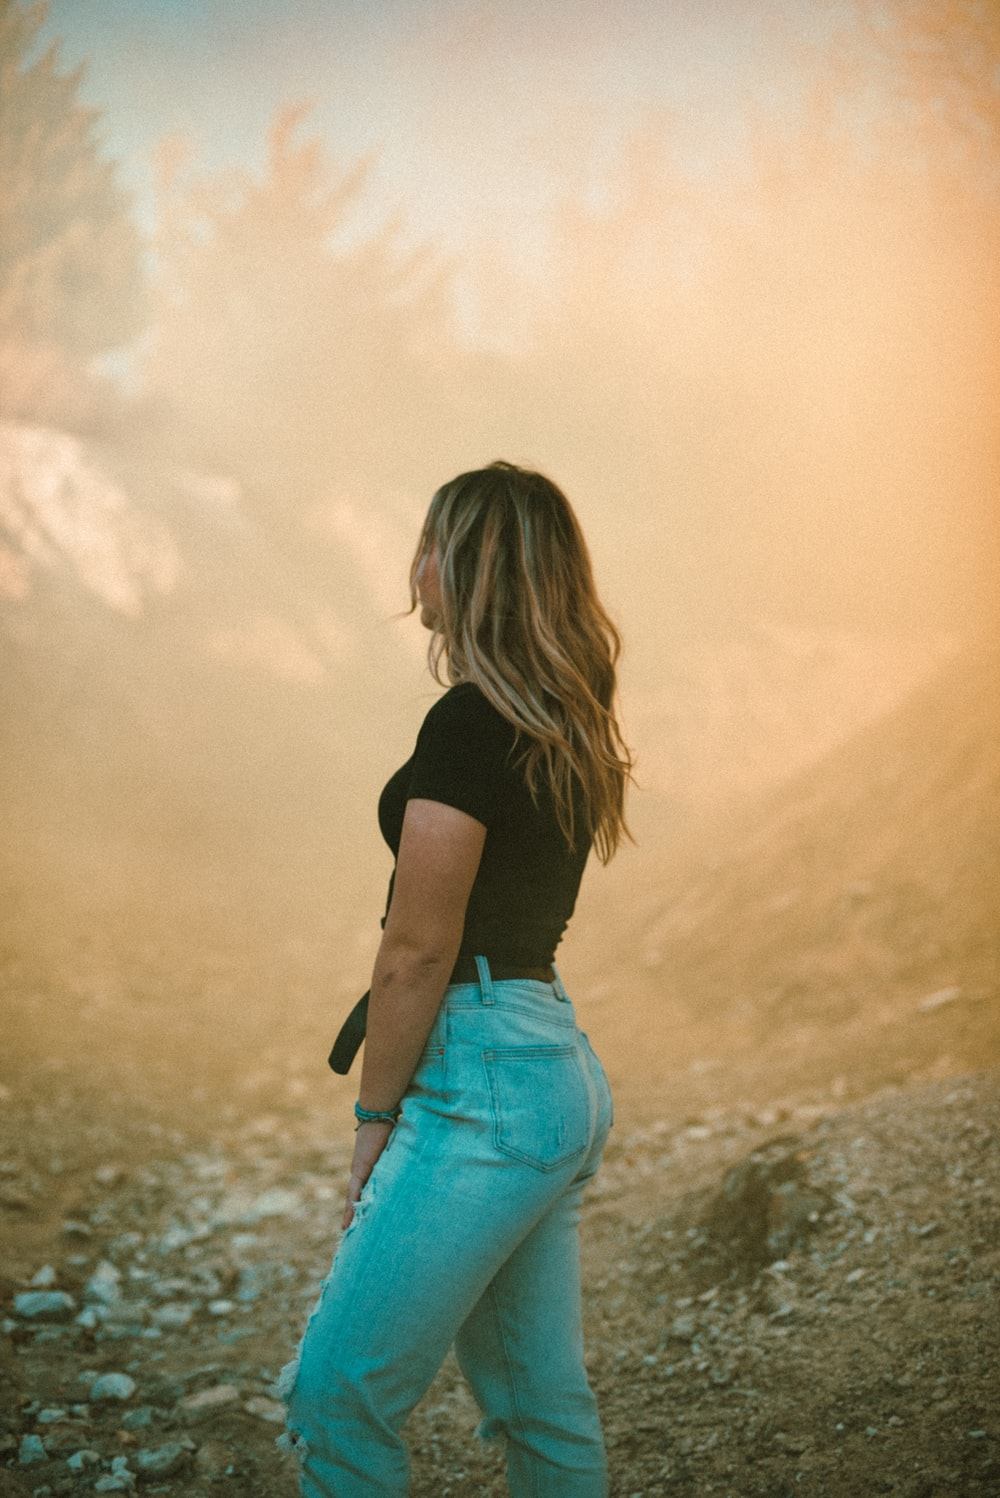 woman in black shirt and blue denim shorts standing on brown field